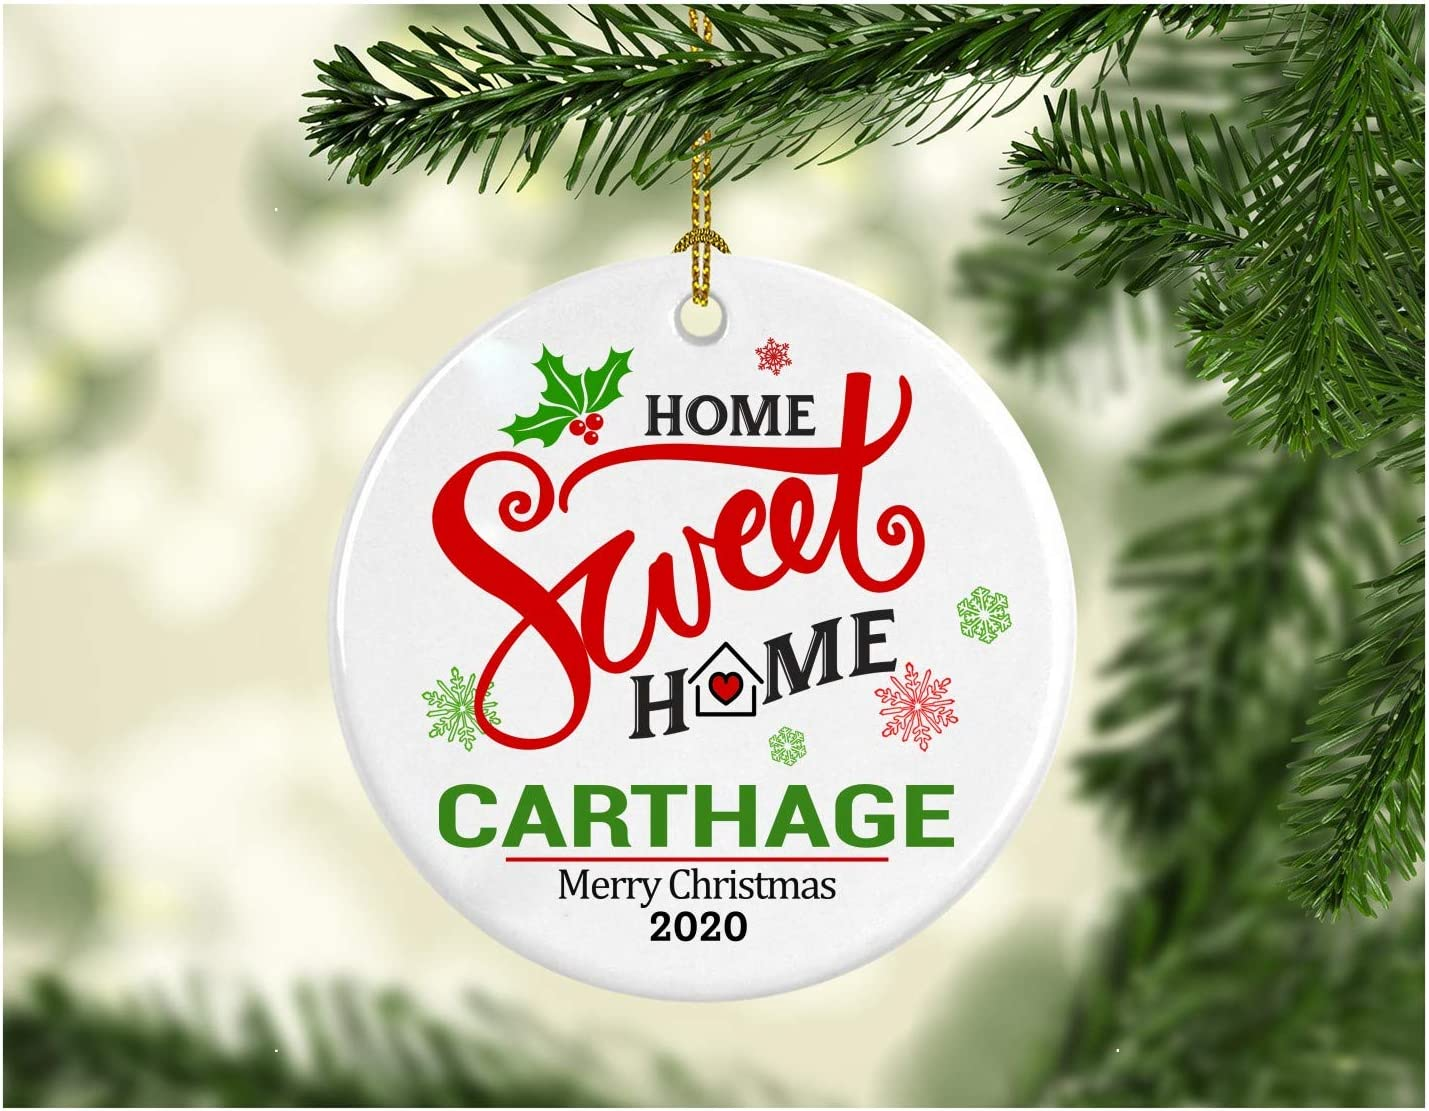 When Is The Carthage Christmas In 2020 Amazon.com: Christmas Decoration Tree Ornament State   Home Sweet